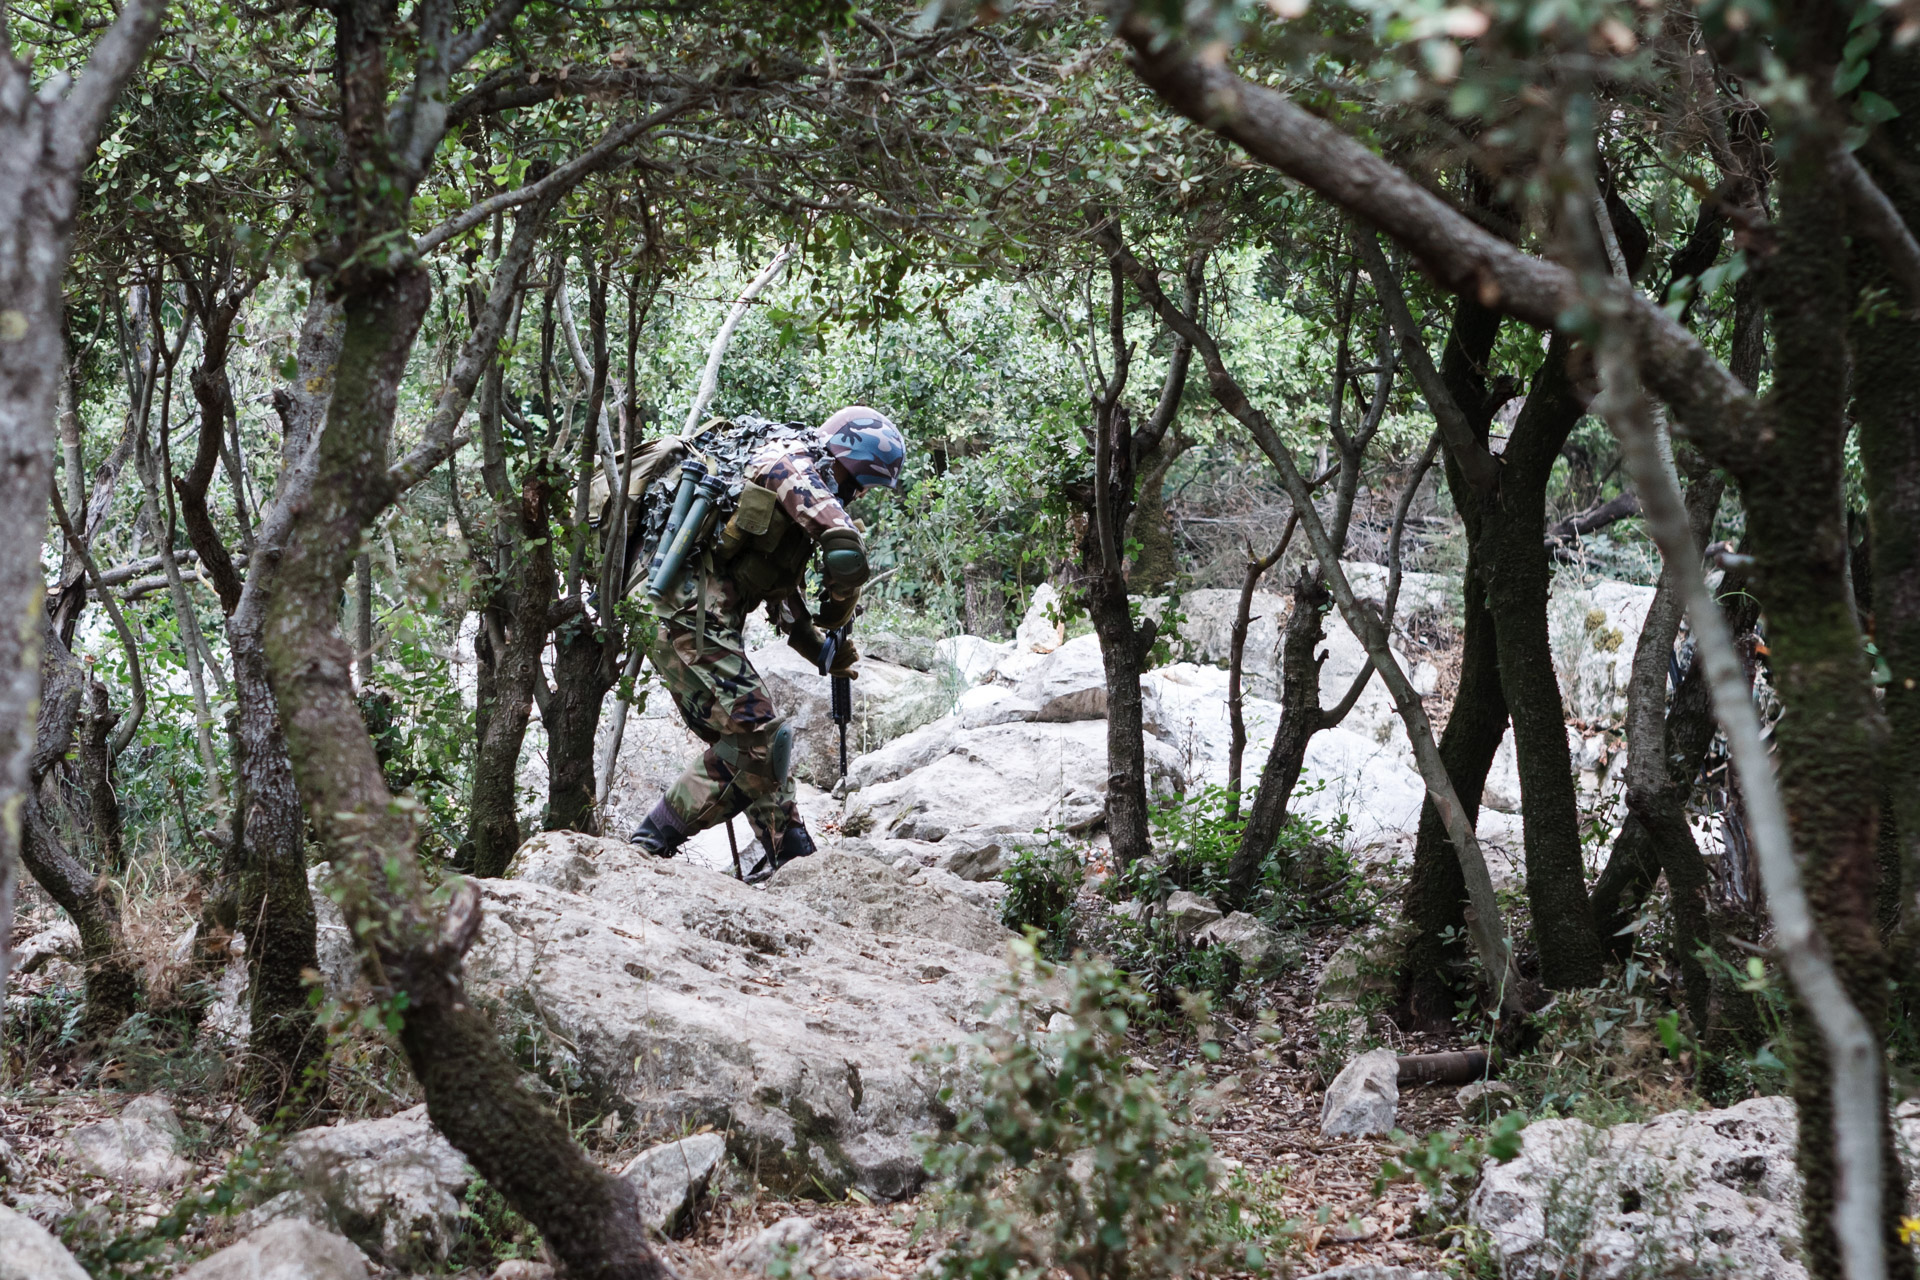 During the tour, Mleeta tries to set up a realistic scenario what the mountain used to look like in times of active conflict. Here, a Hezbollah soldier can be spotted wandering in a forest.